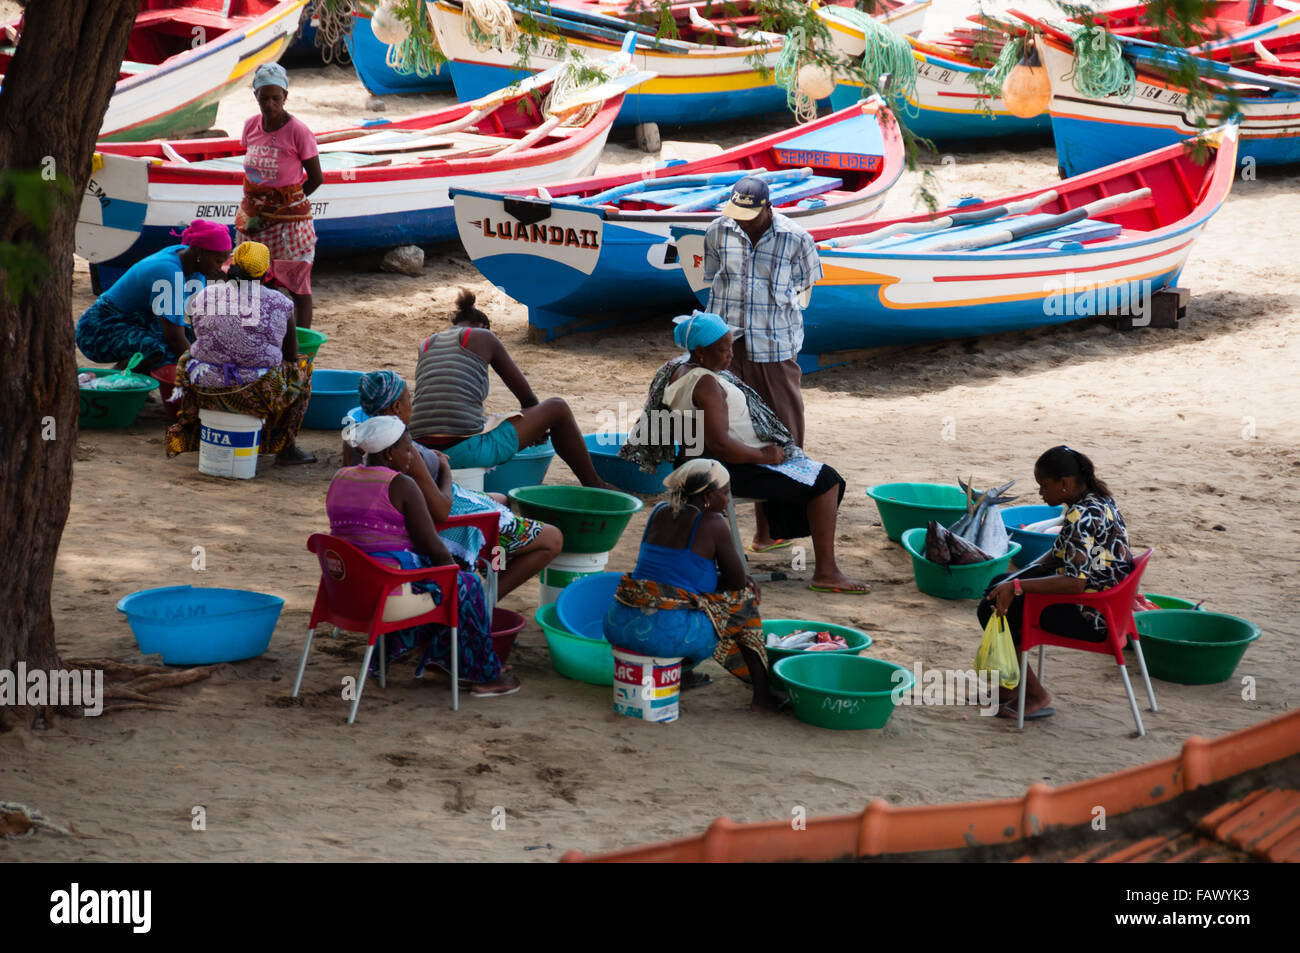 African people men womean and boat with fish on the sand beach in cape verde - Stock Image